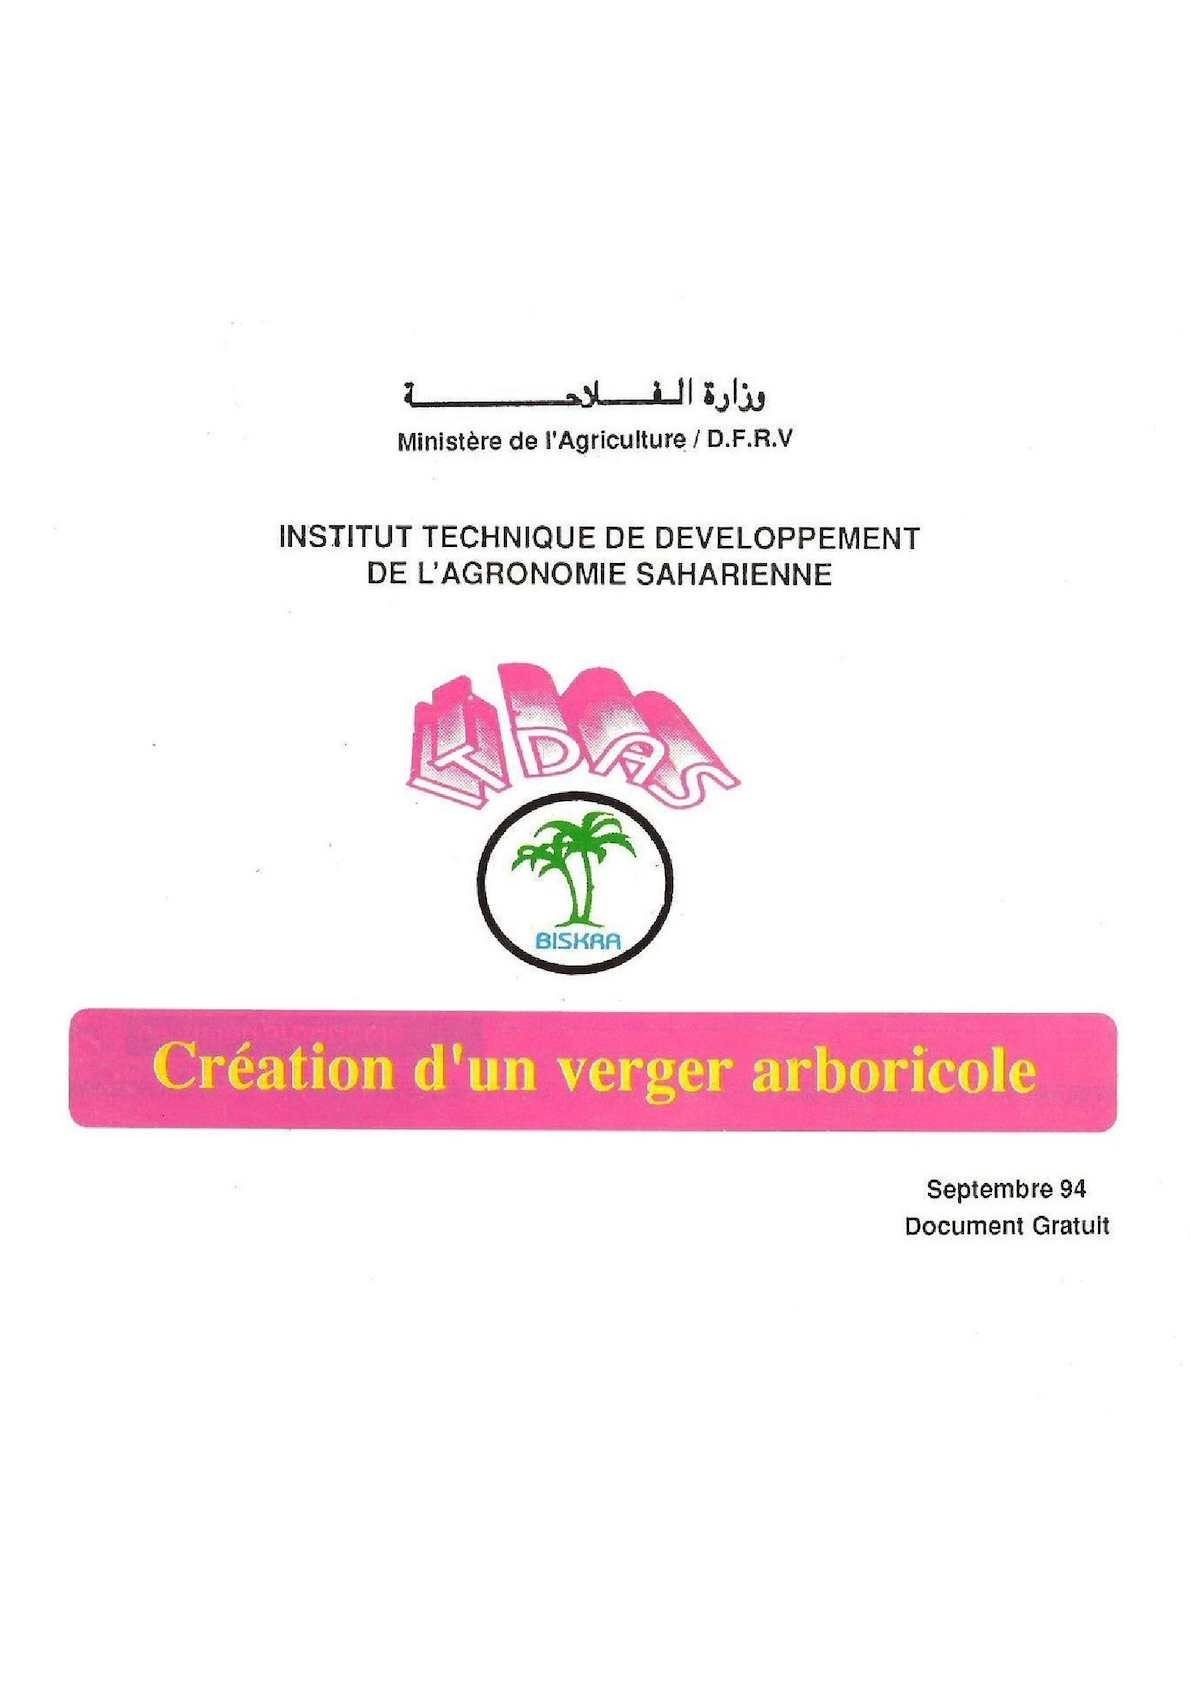 Creation D'un Verger Arboricole